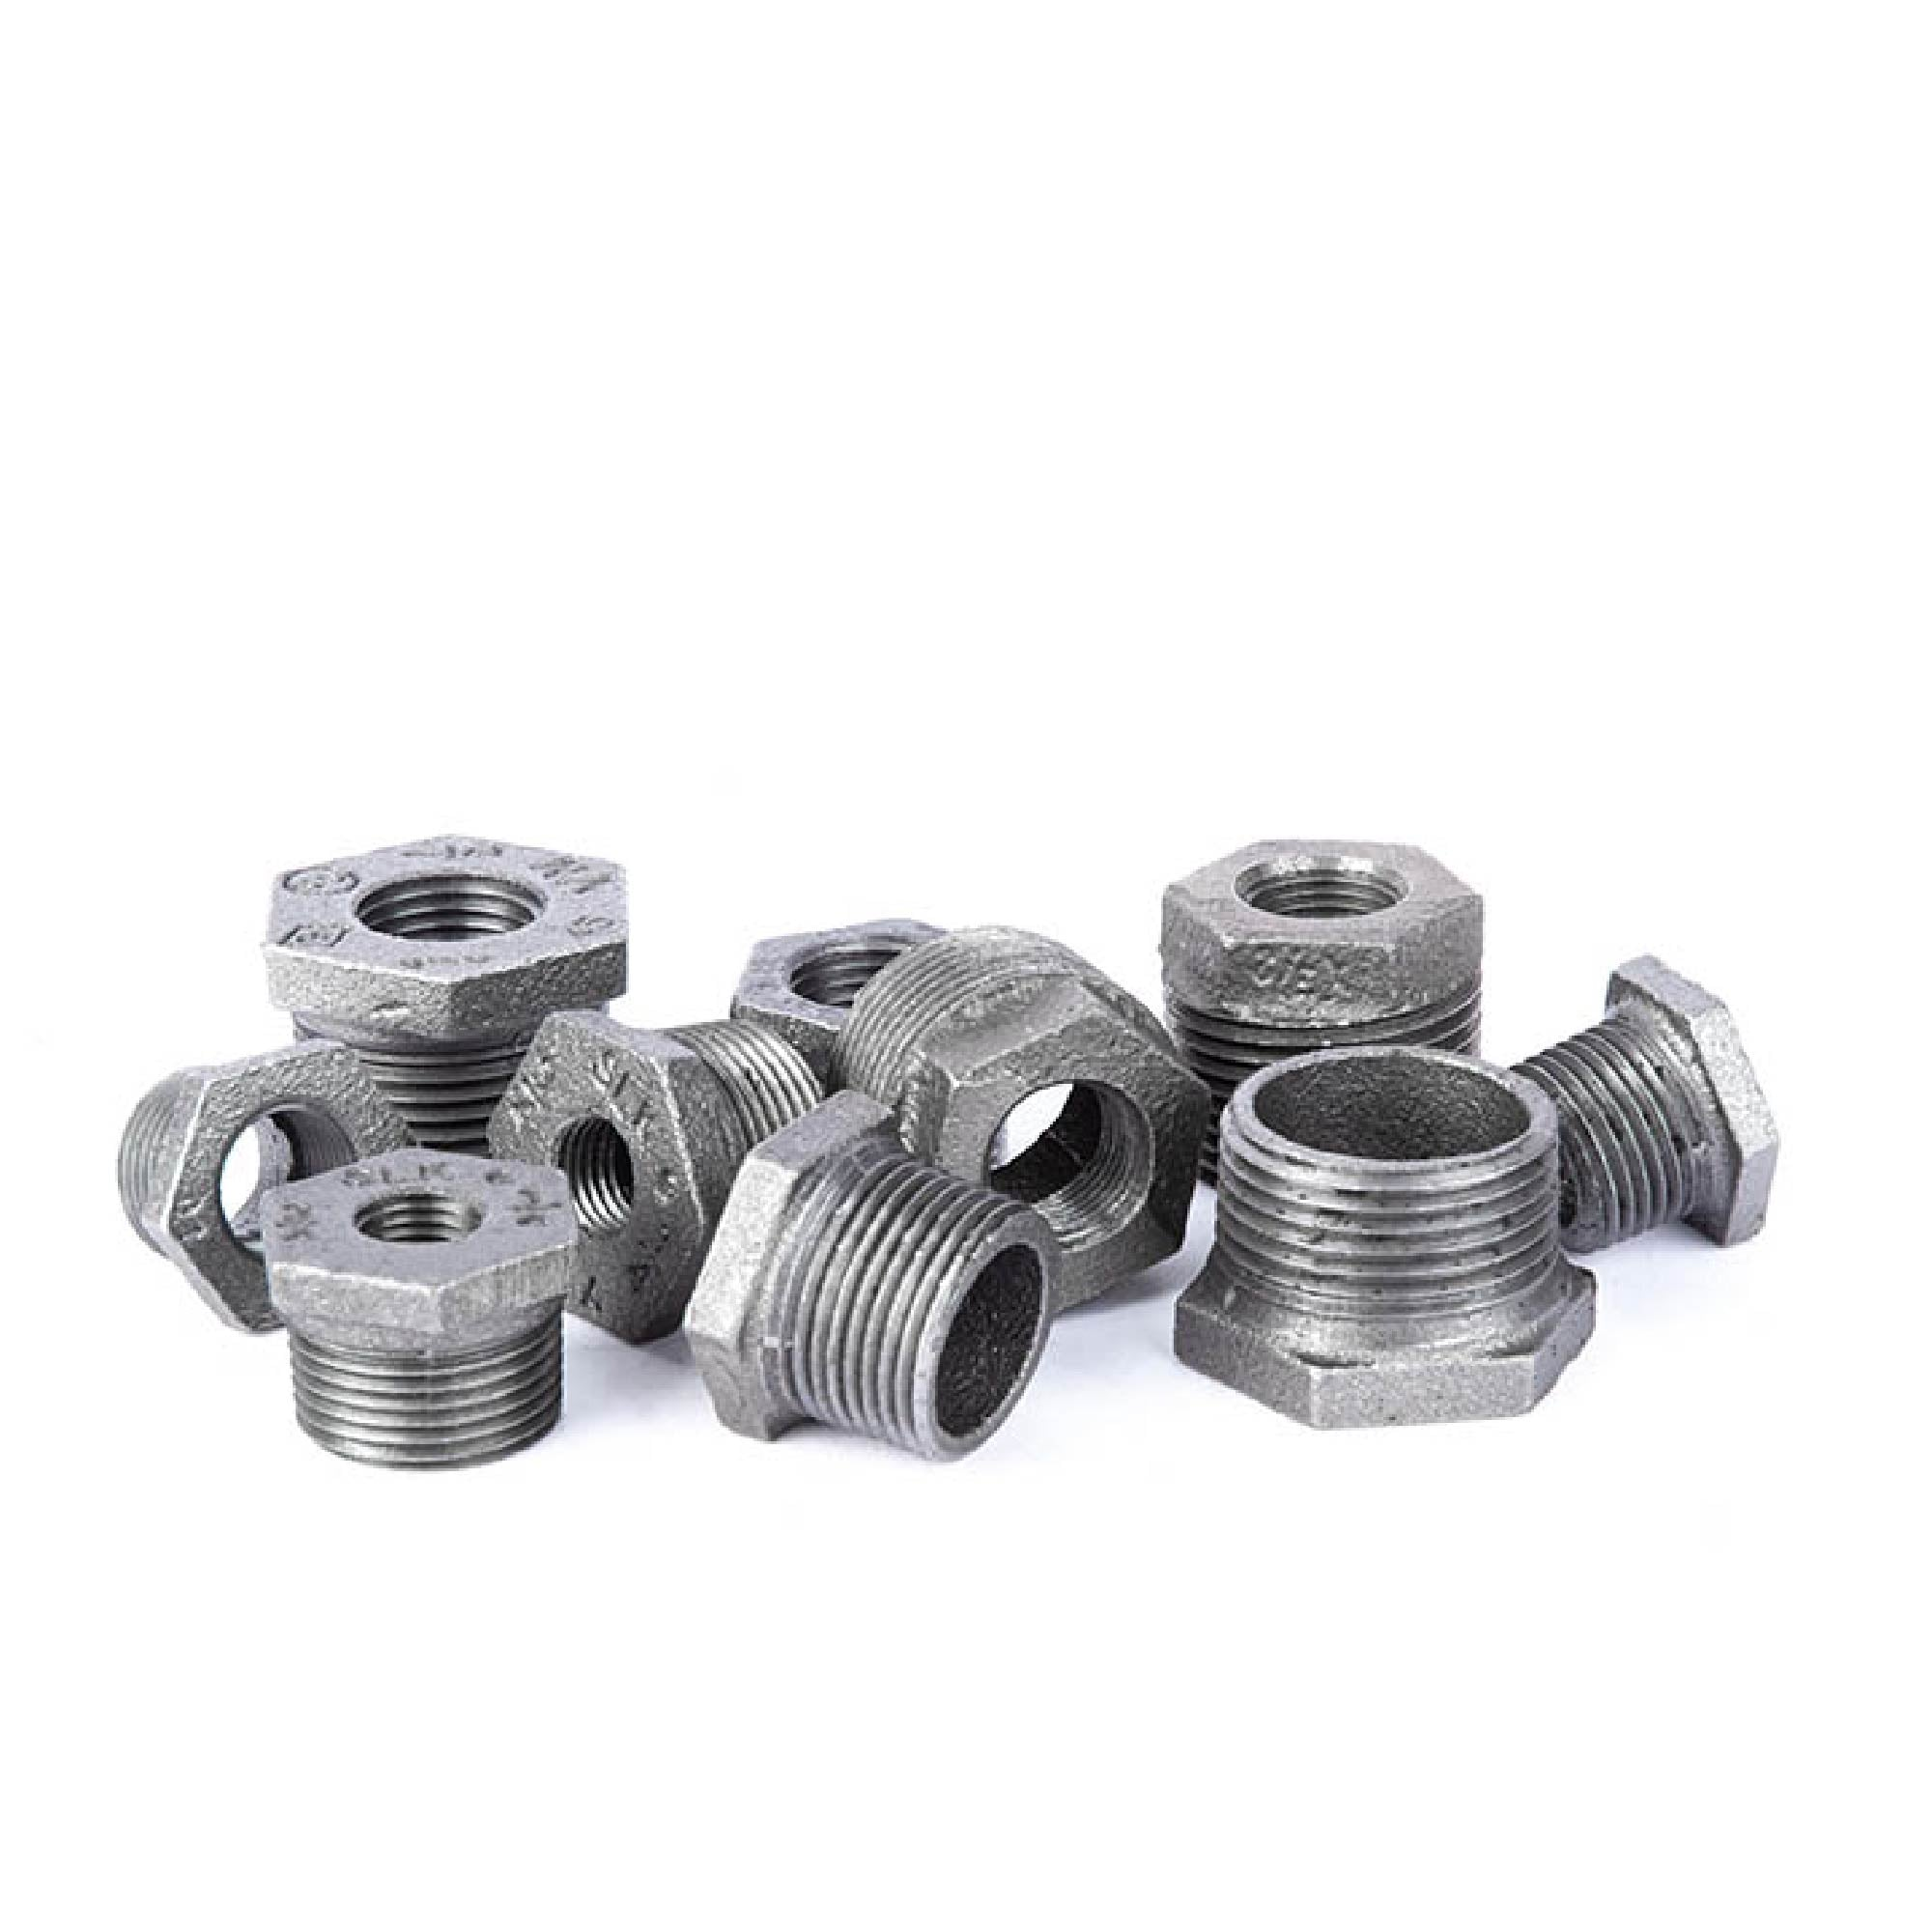 3/4 IN X 3/8 IN BUSHING